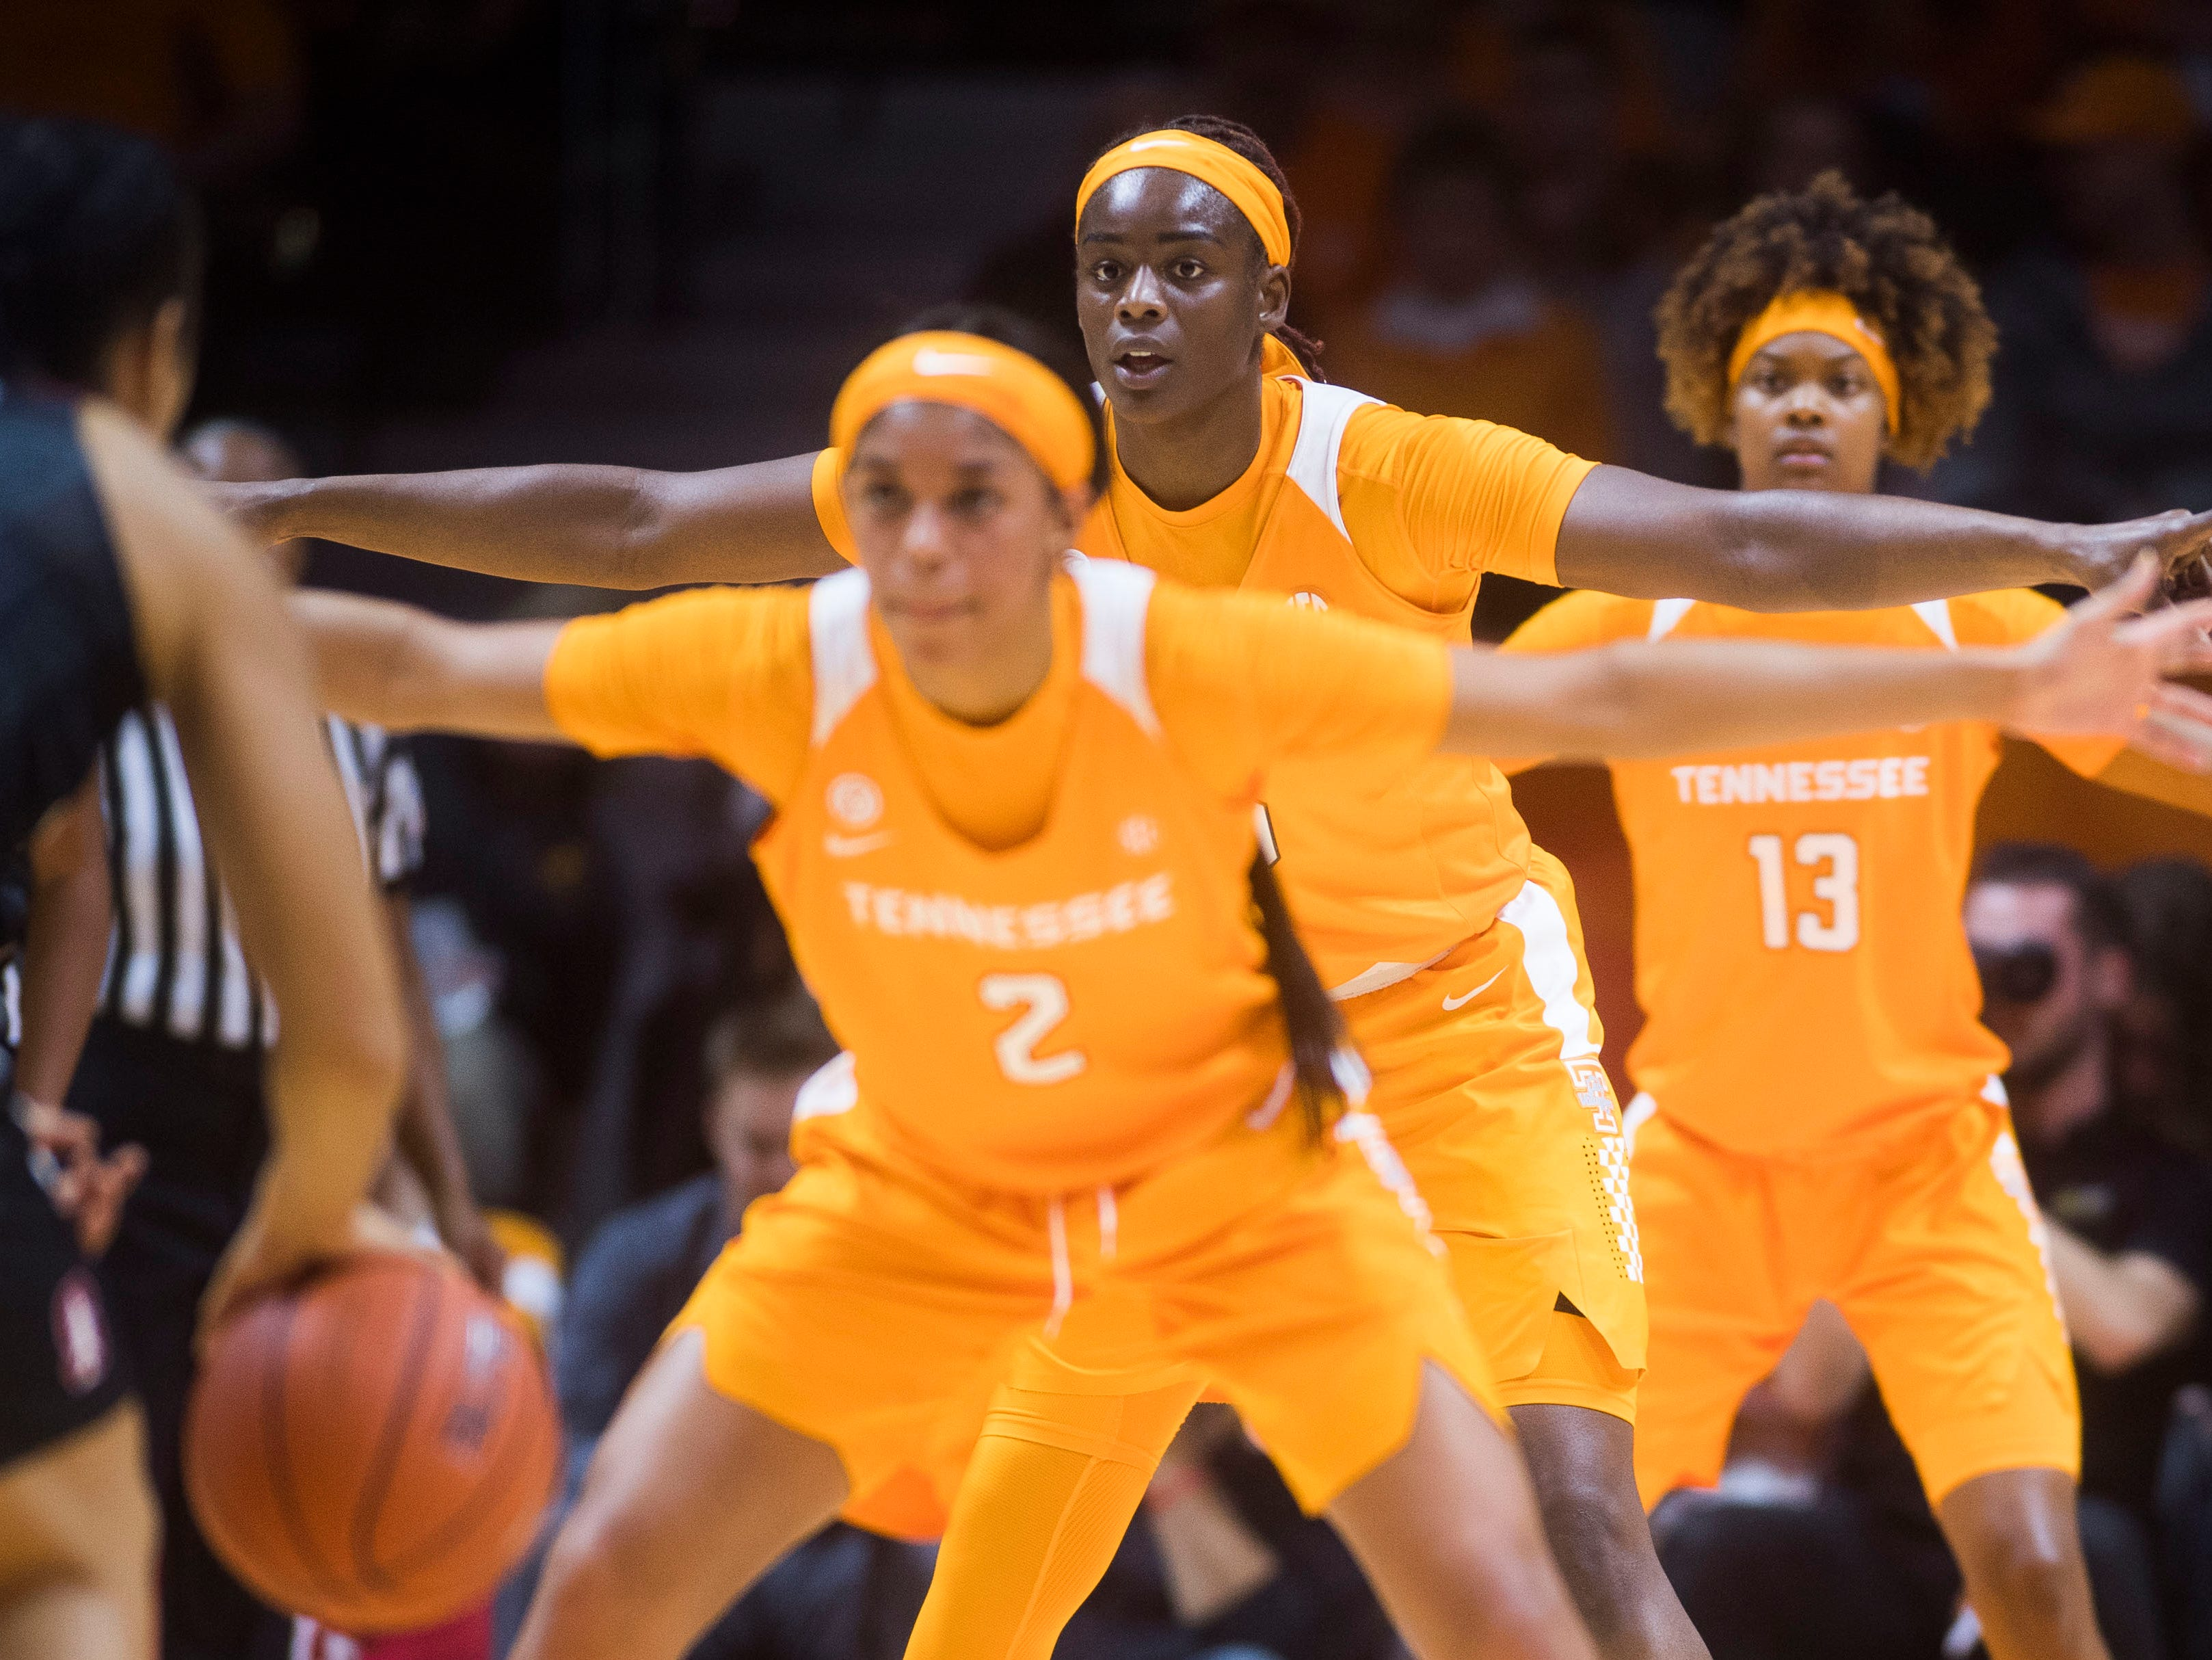 Tennessee players block a Stanford player during a women's basketball game between Tennessee and Stanford at Thompson-Boling Arena Tuesday, Dec. 18, 2018.